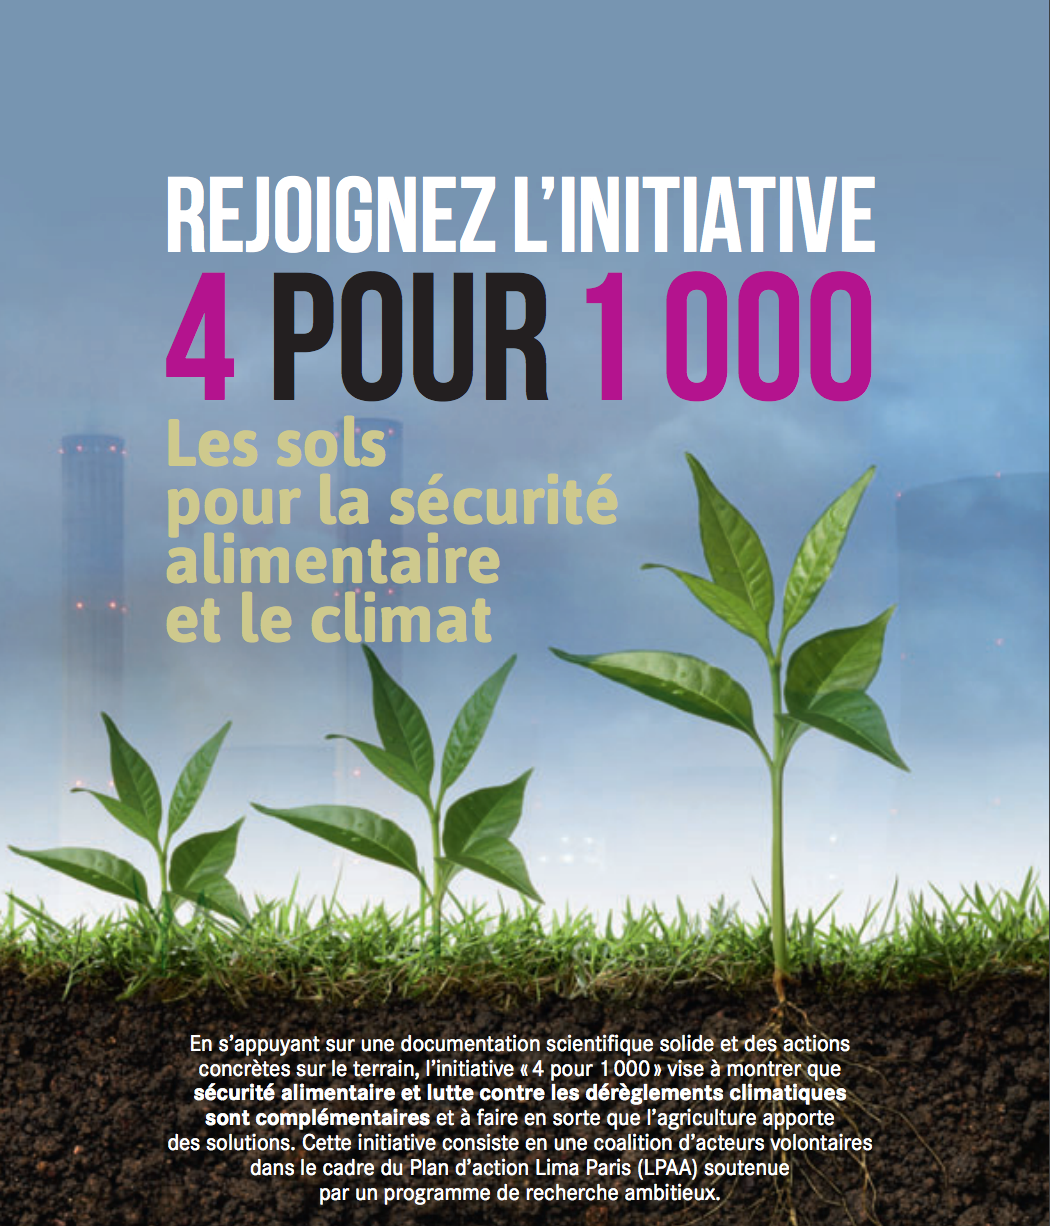 agriculture_gouv_fr_sites_minagri_files_4pour1000_fr_nov2015_pdf